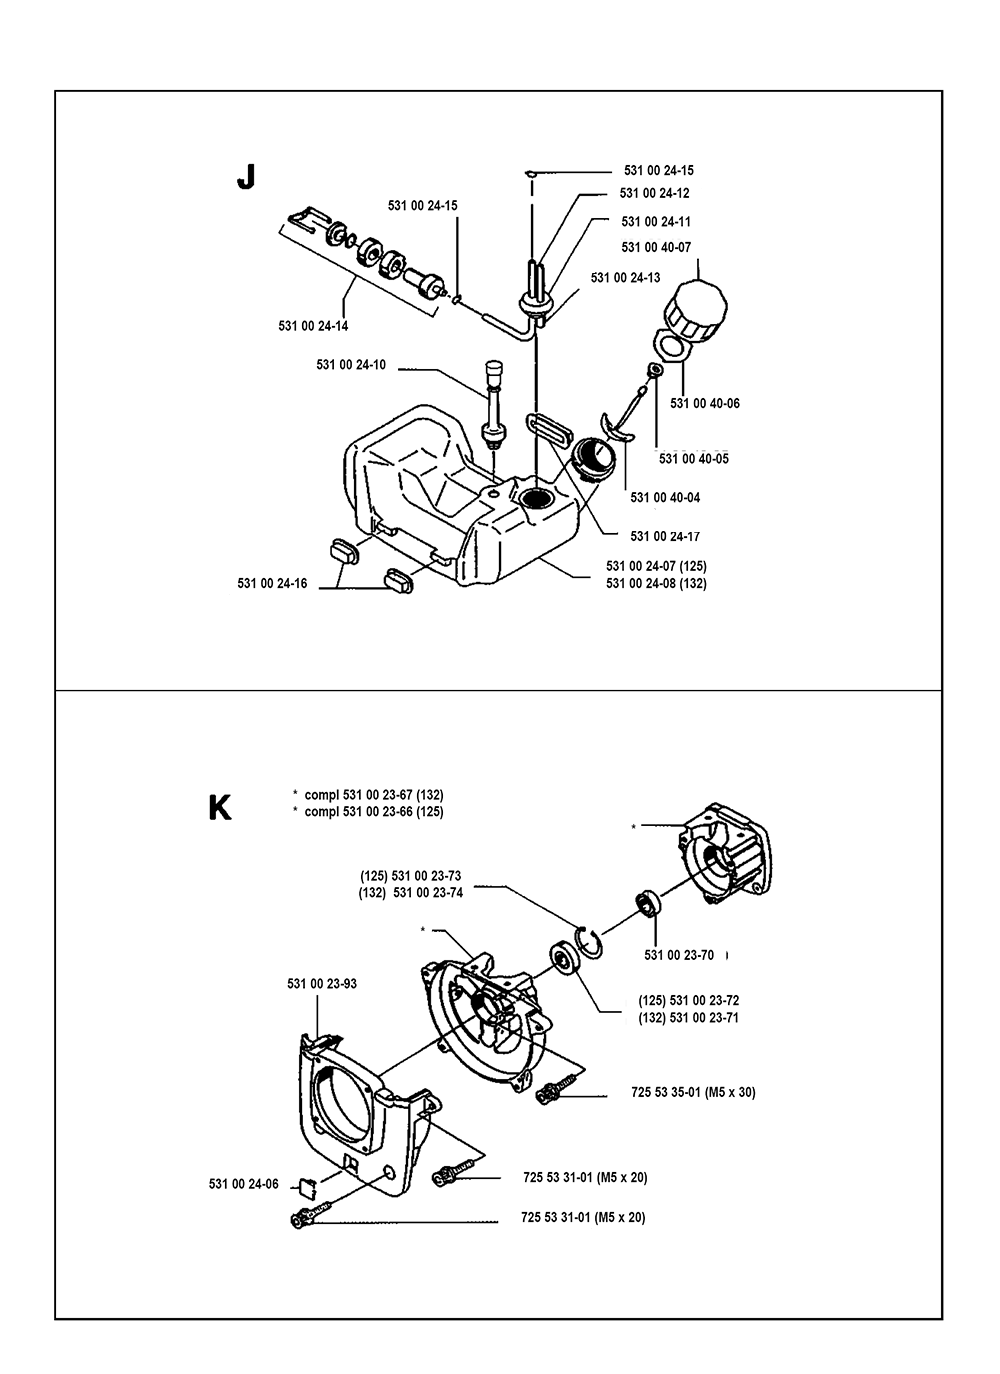 132 R-(I9300002)-Husqvarna-PB-3Break Down